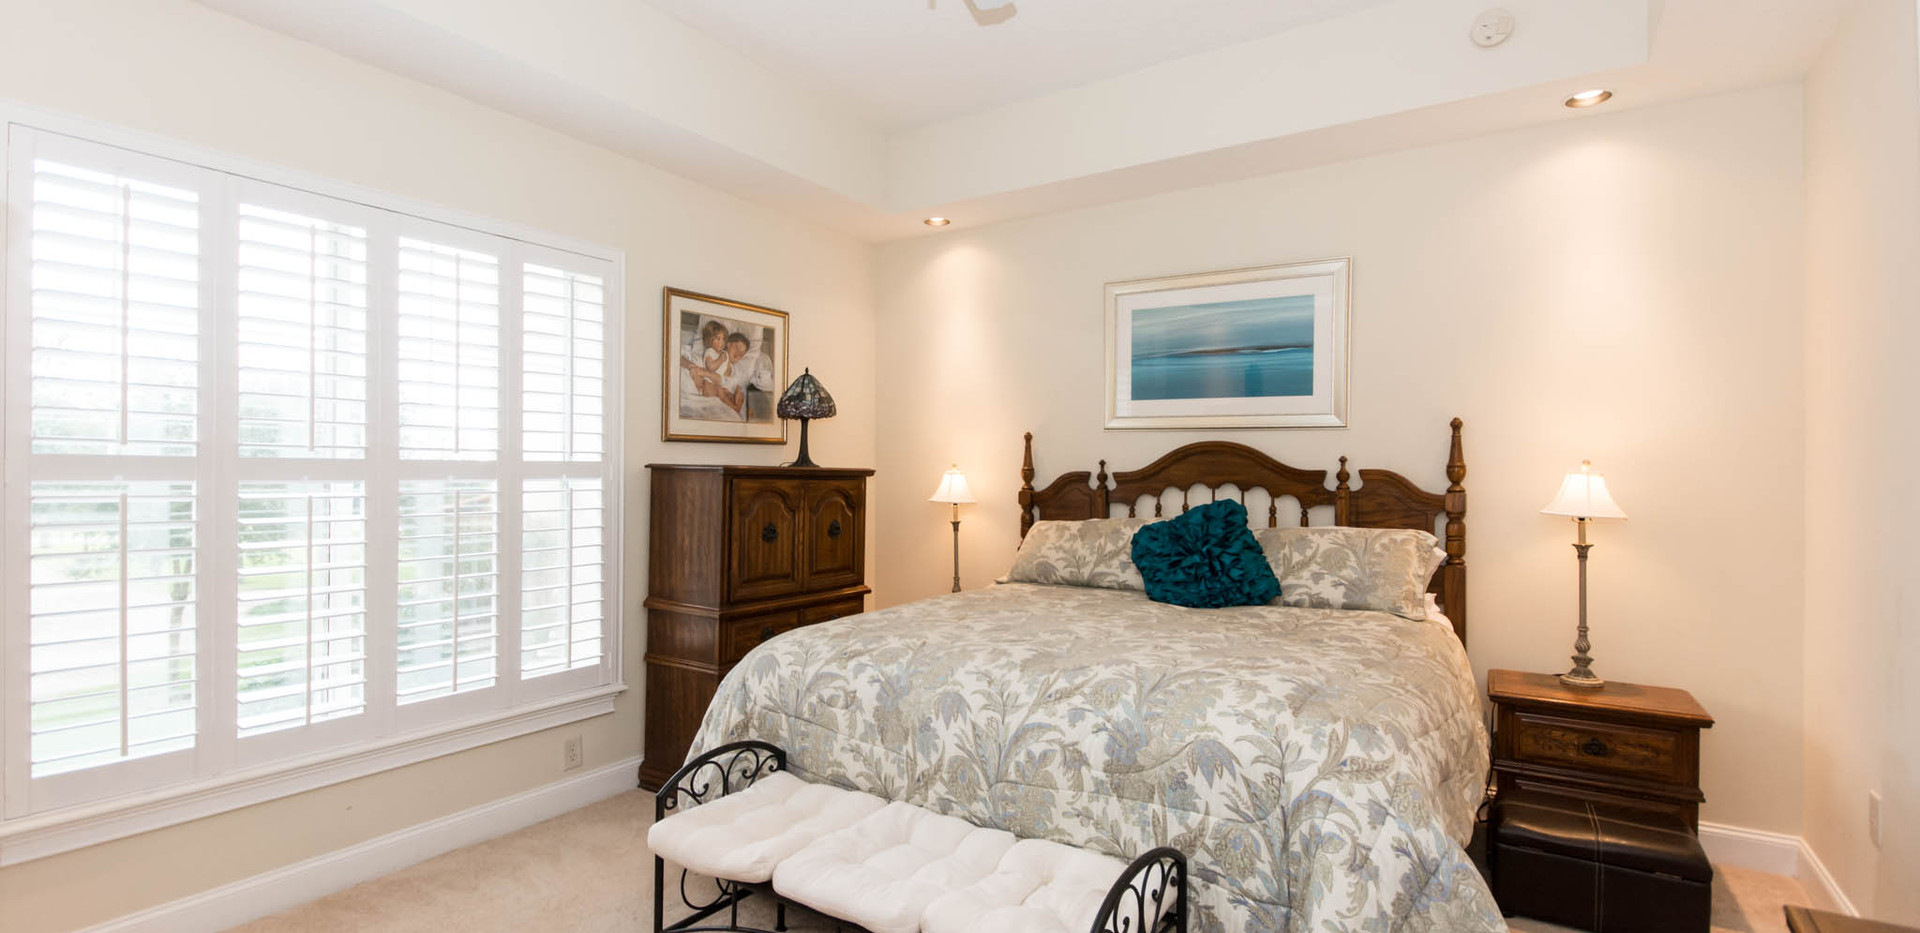 Jacksonville Real Estate Photographer